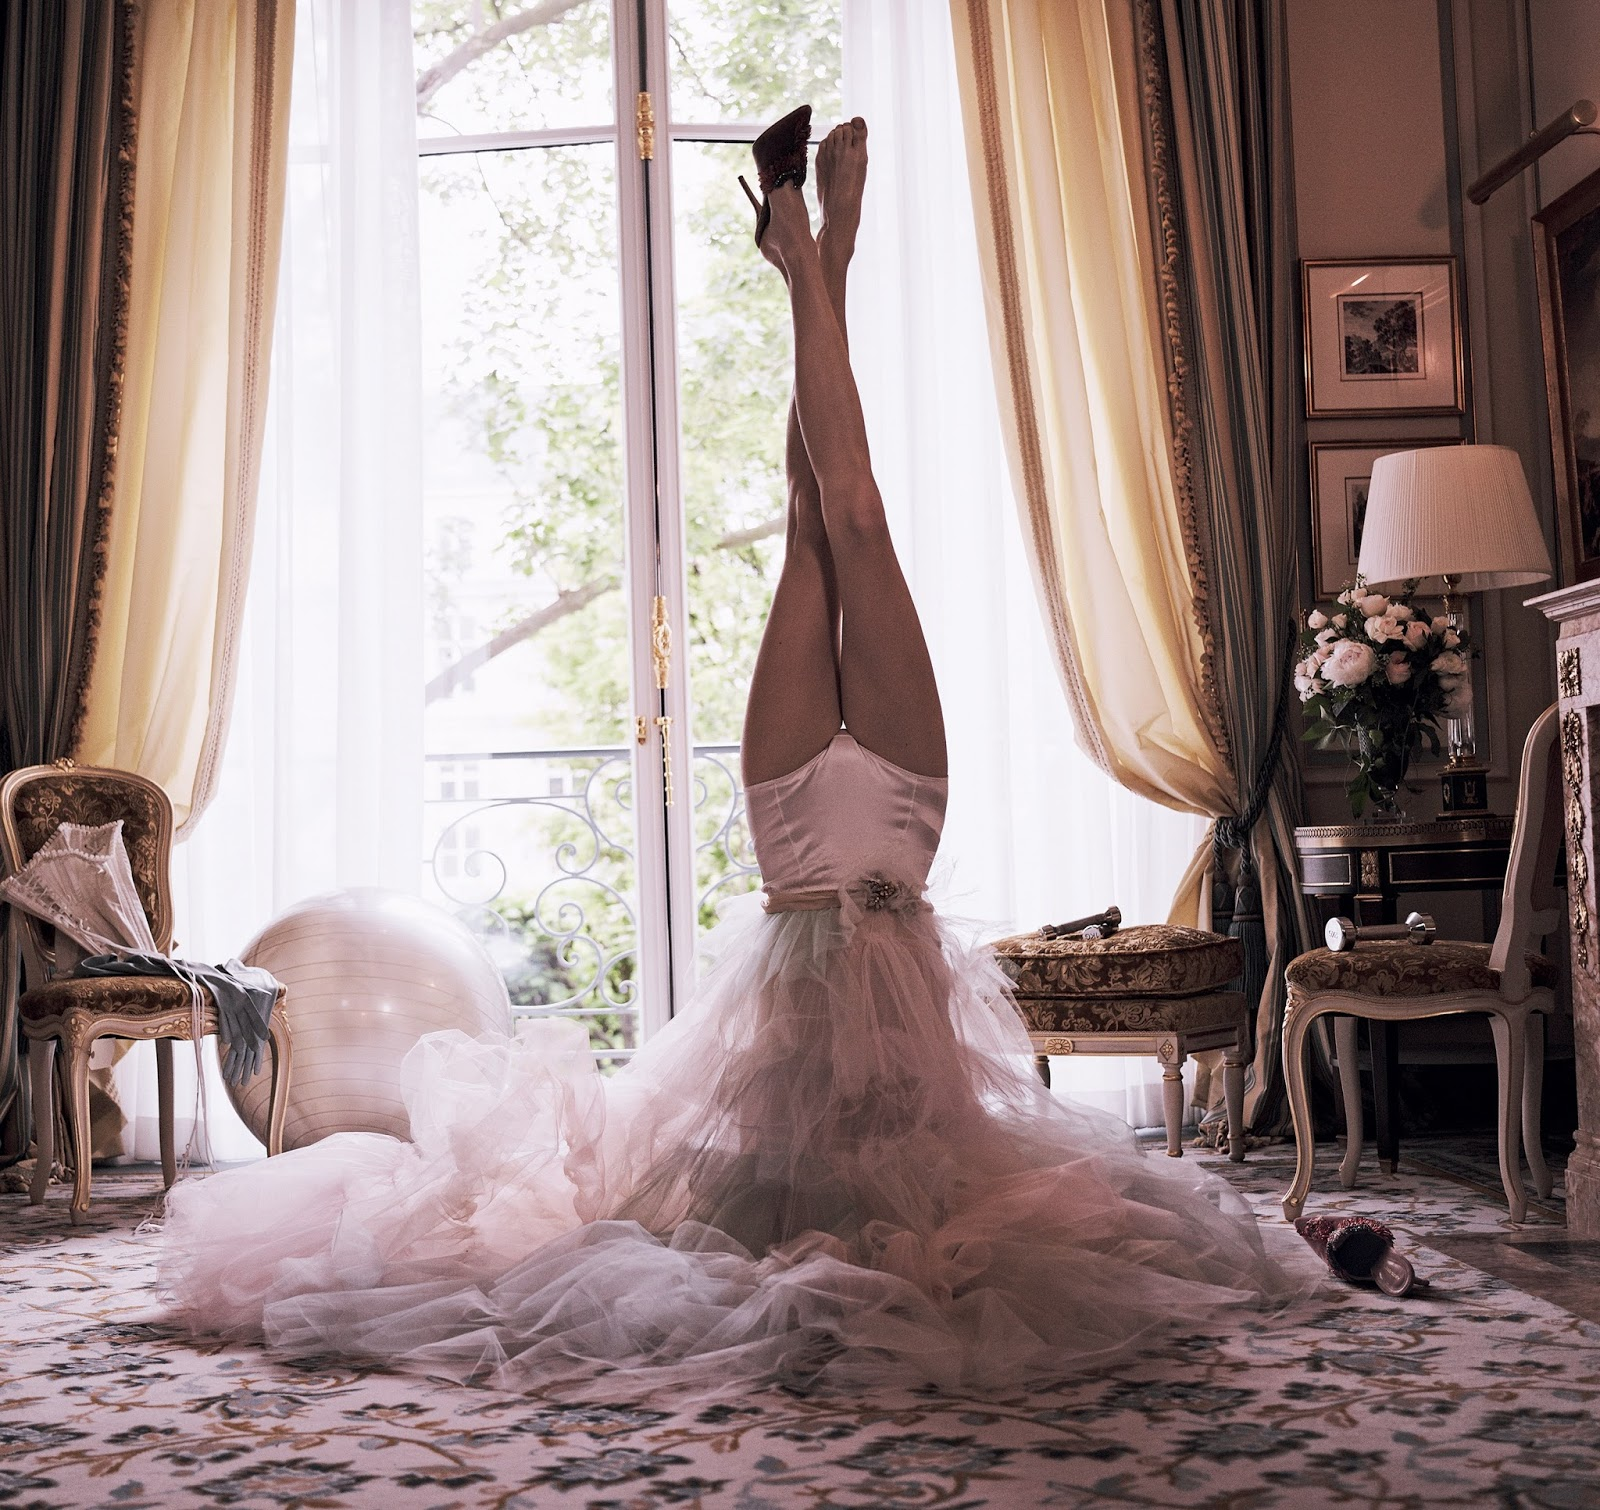 Woman standing on head in suite of Ritz Paris by Vogue